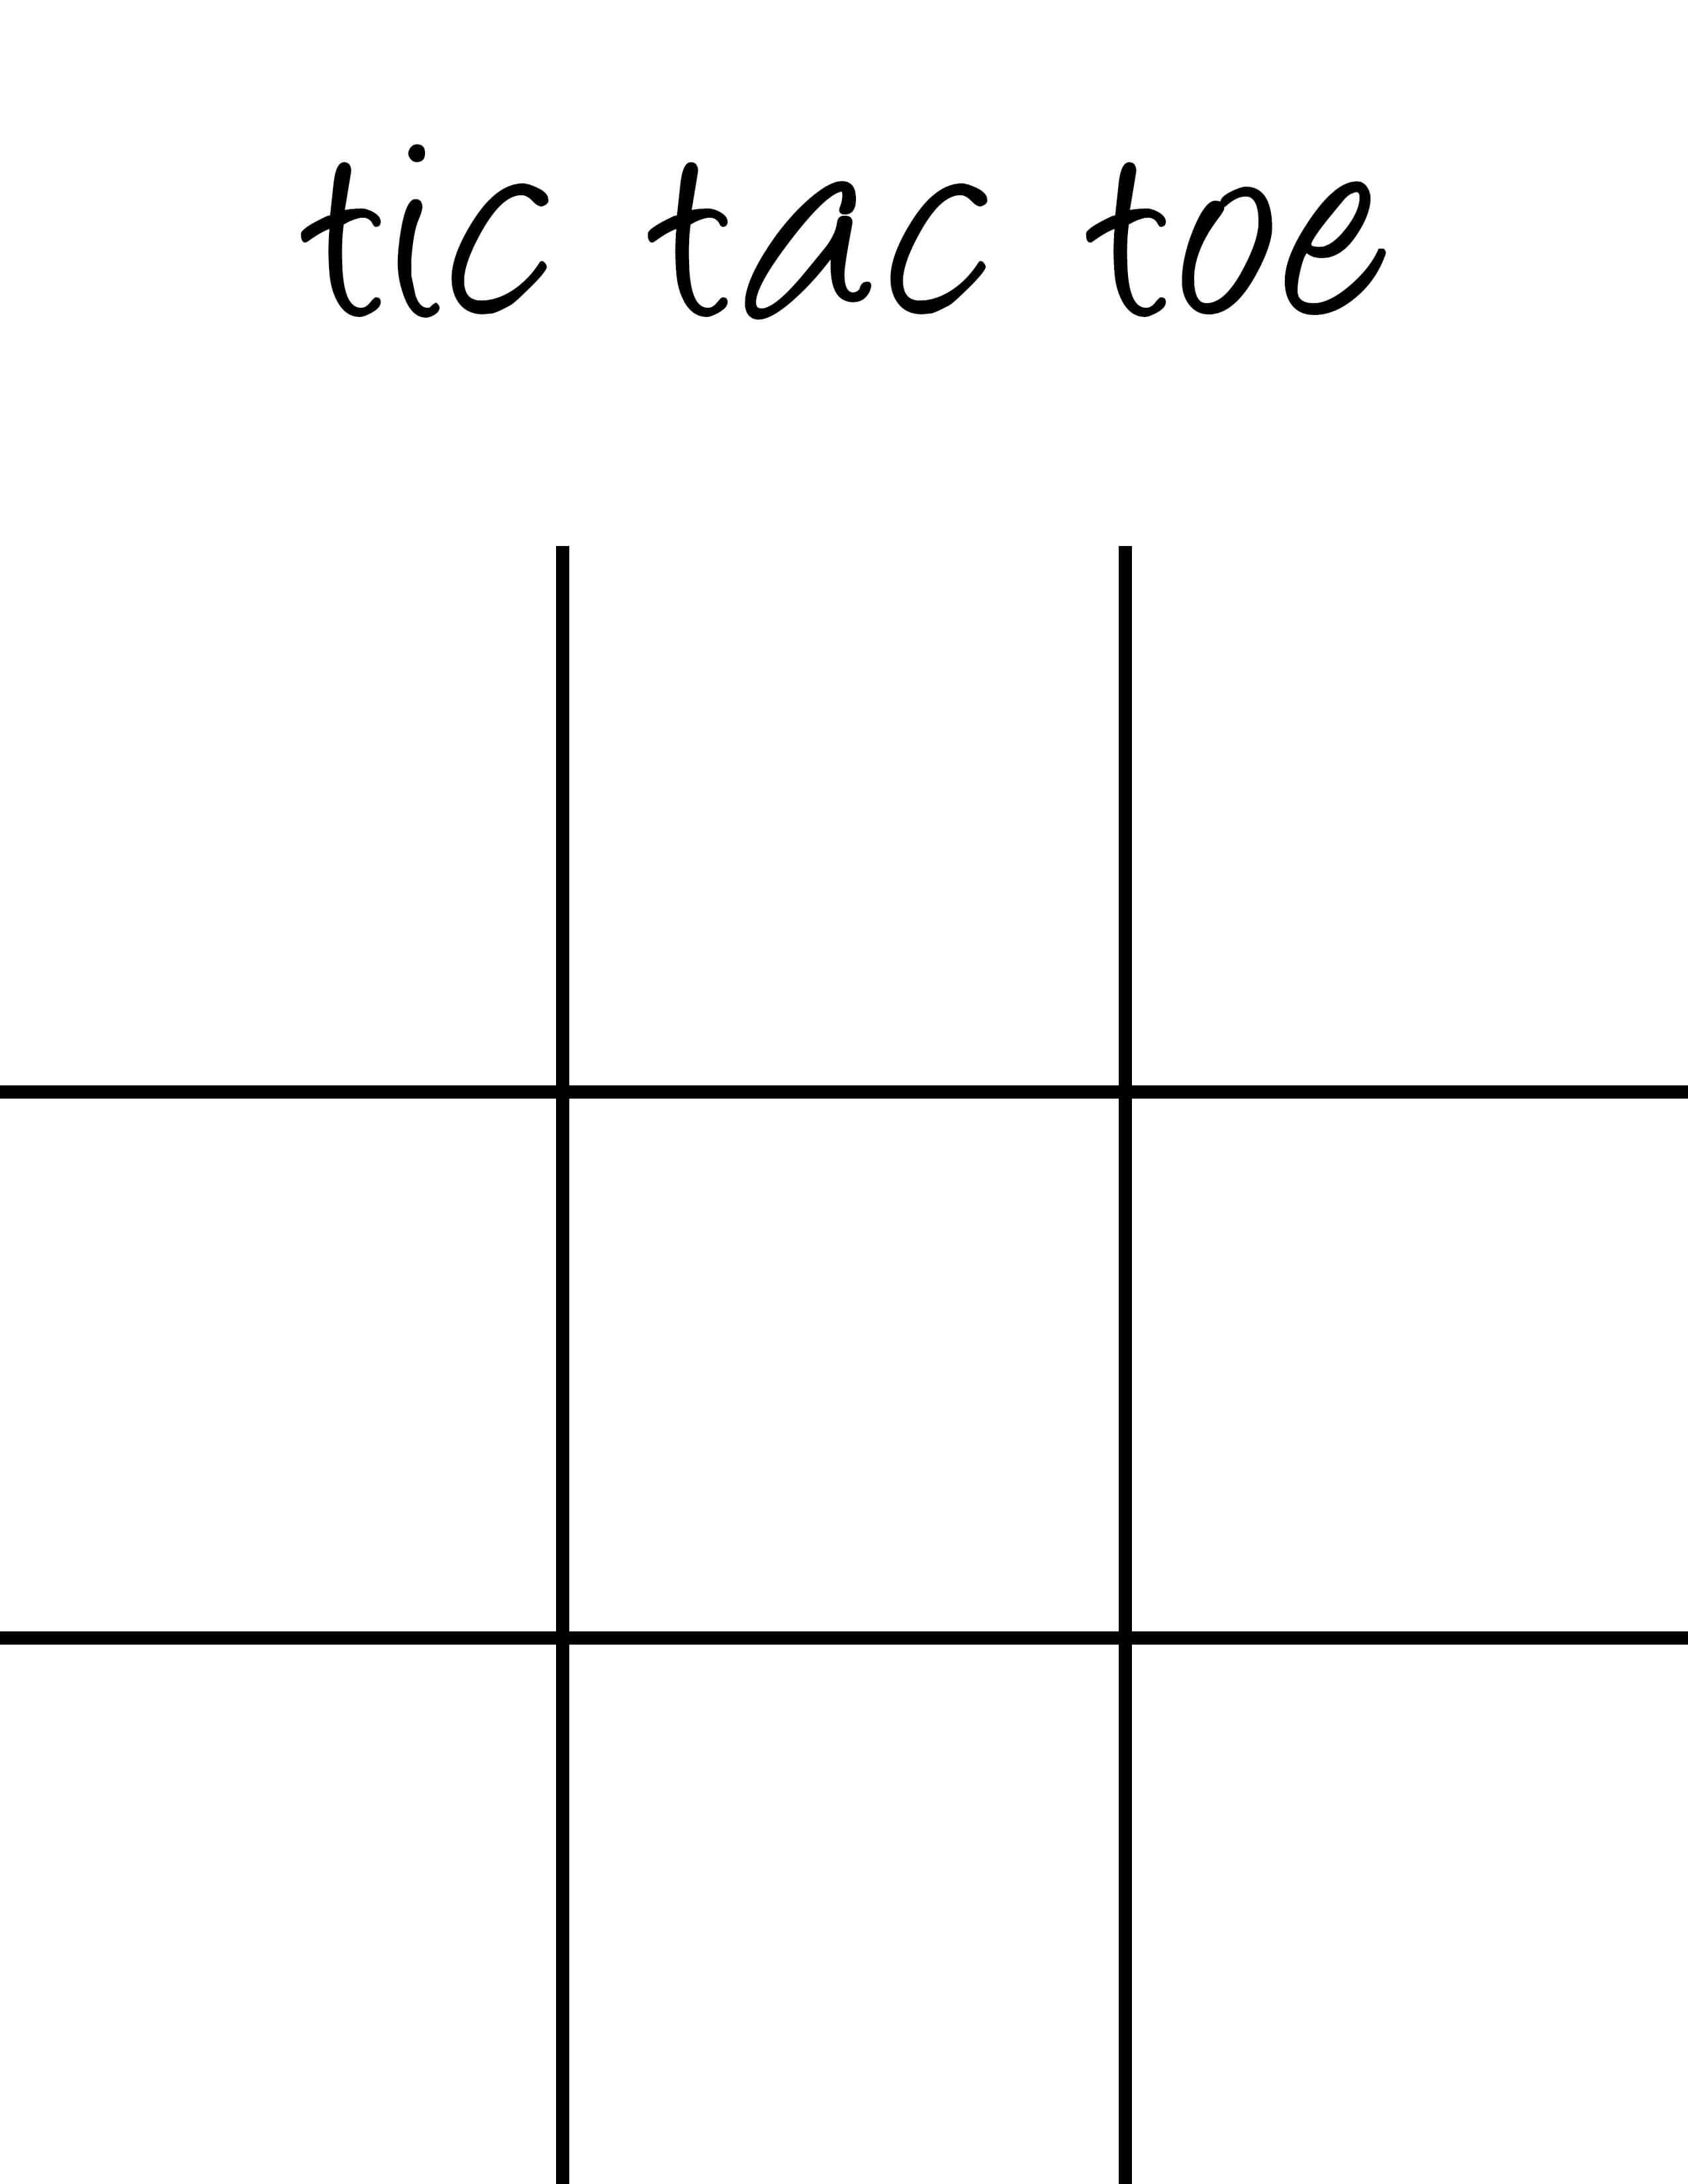 Pinshelley Davila On Kayla's Baby Shower Ideas | Tic Tac In Tic Tac Toe Template Word